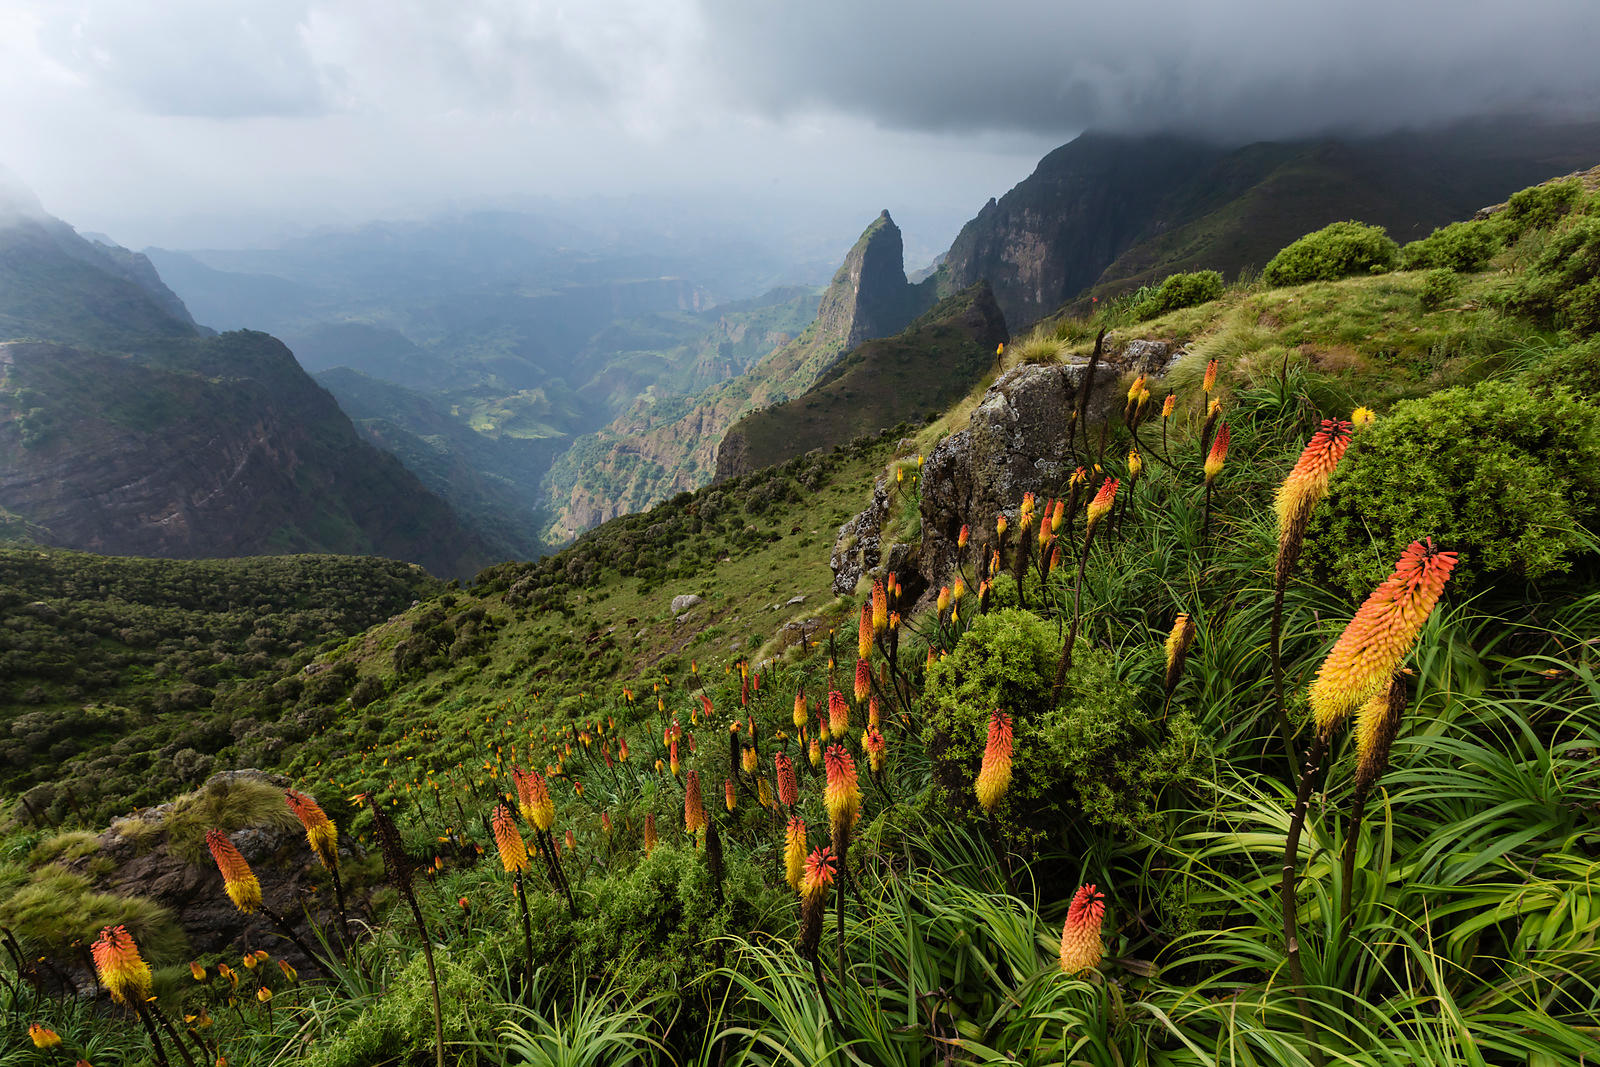 Red Hot Poker and the Simien Mountains